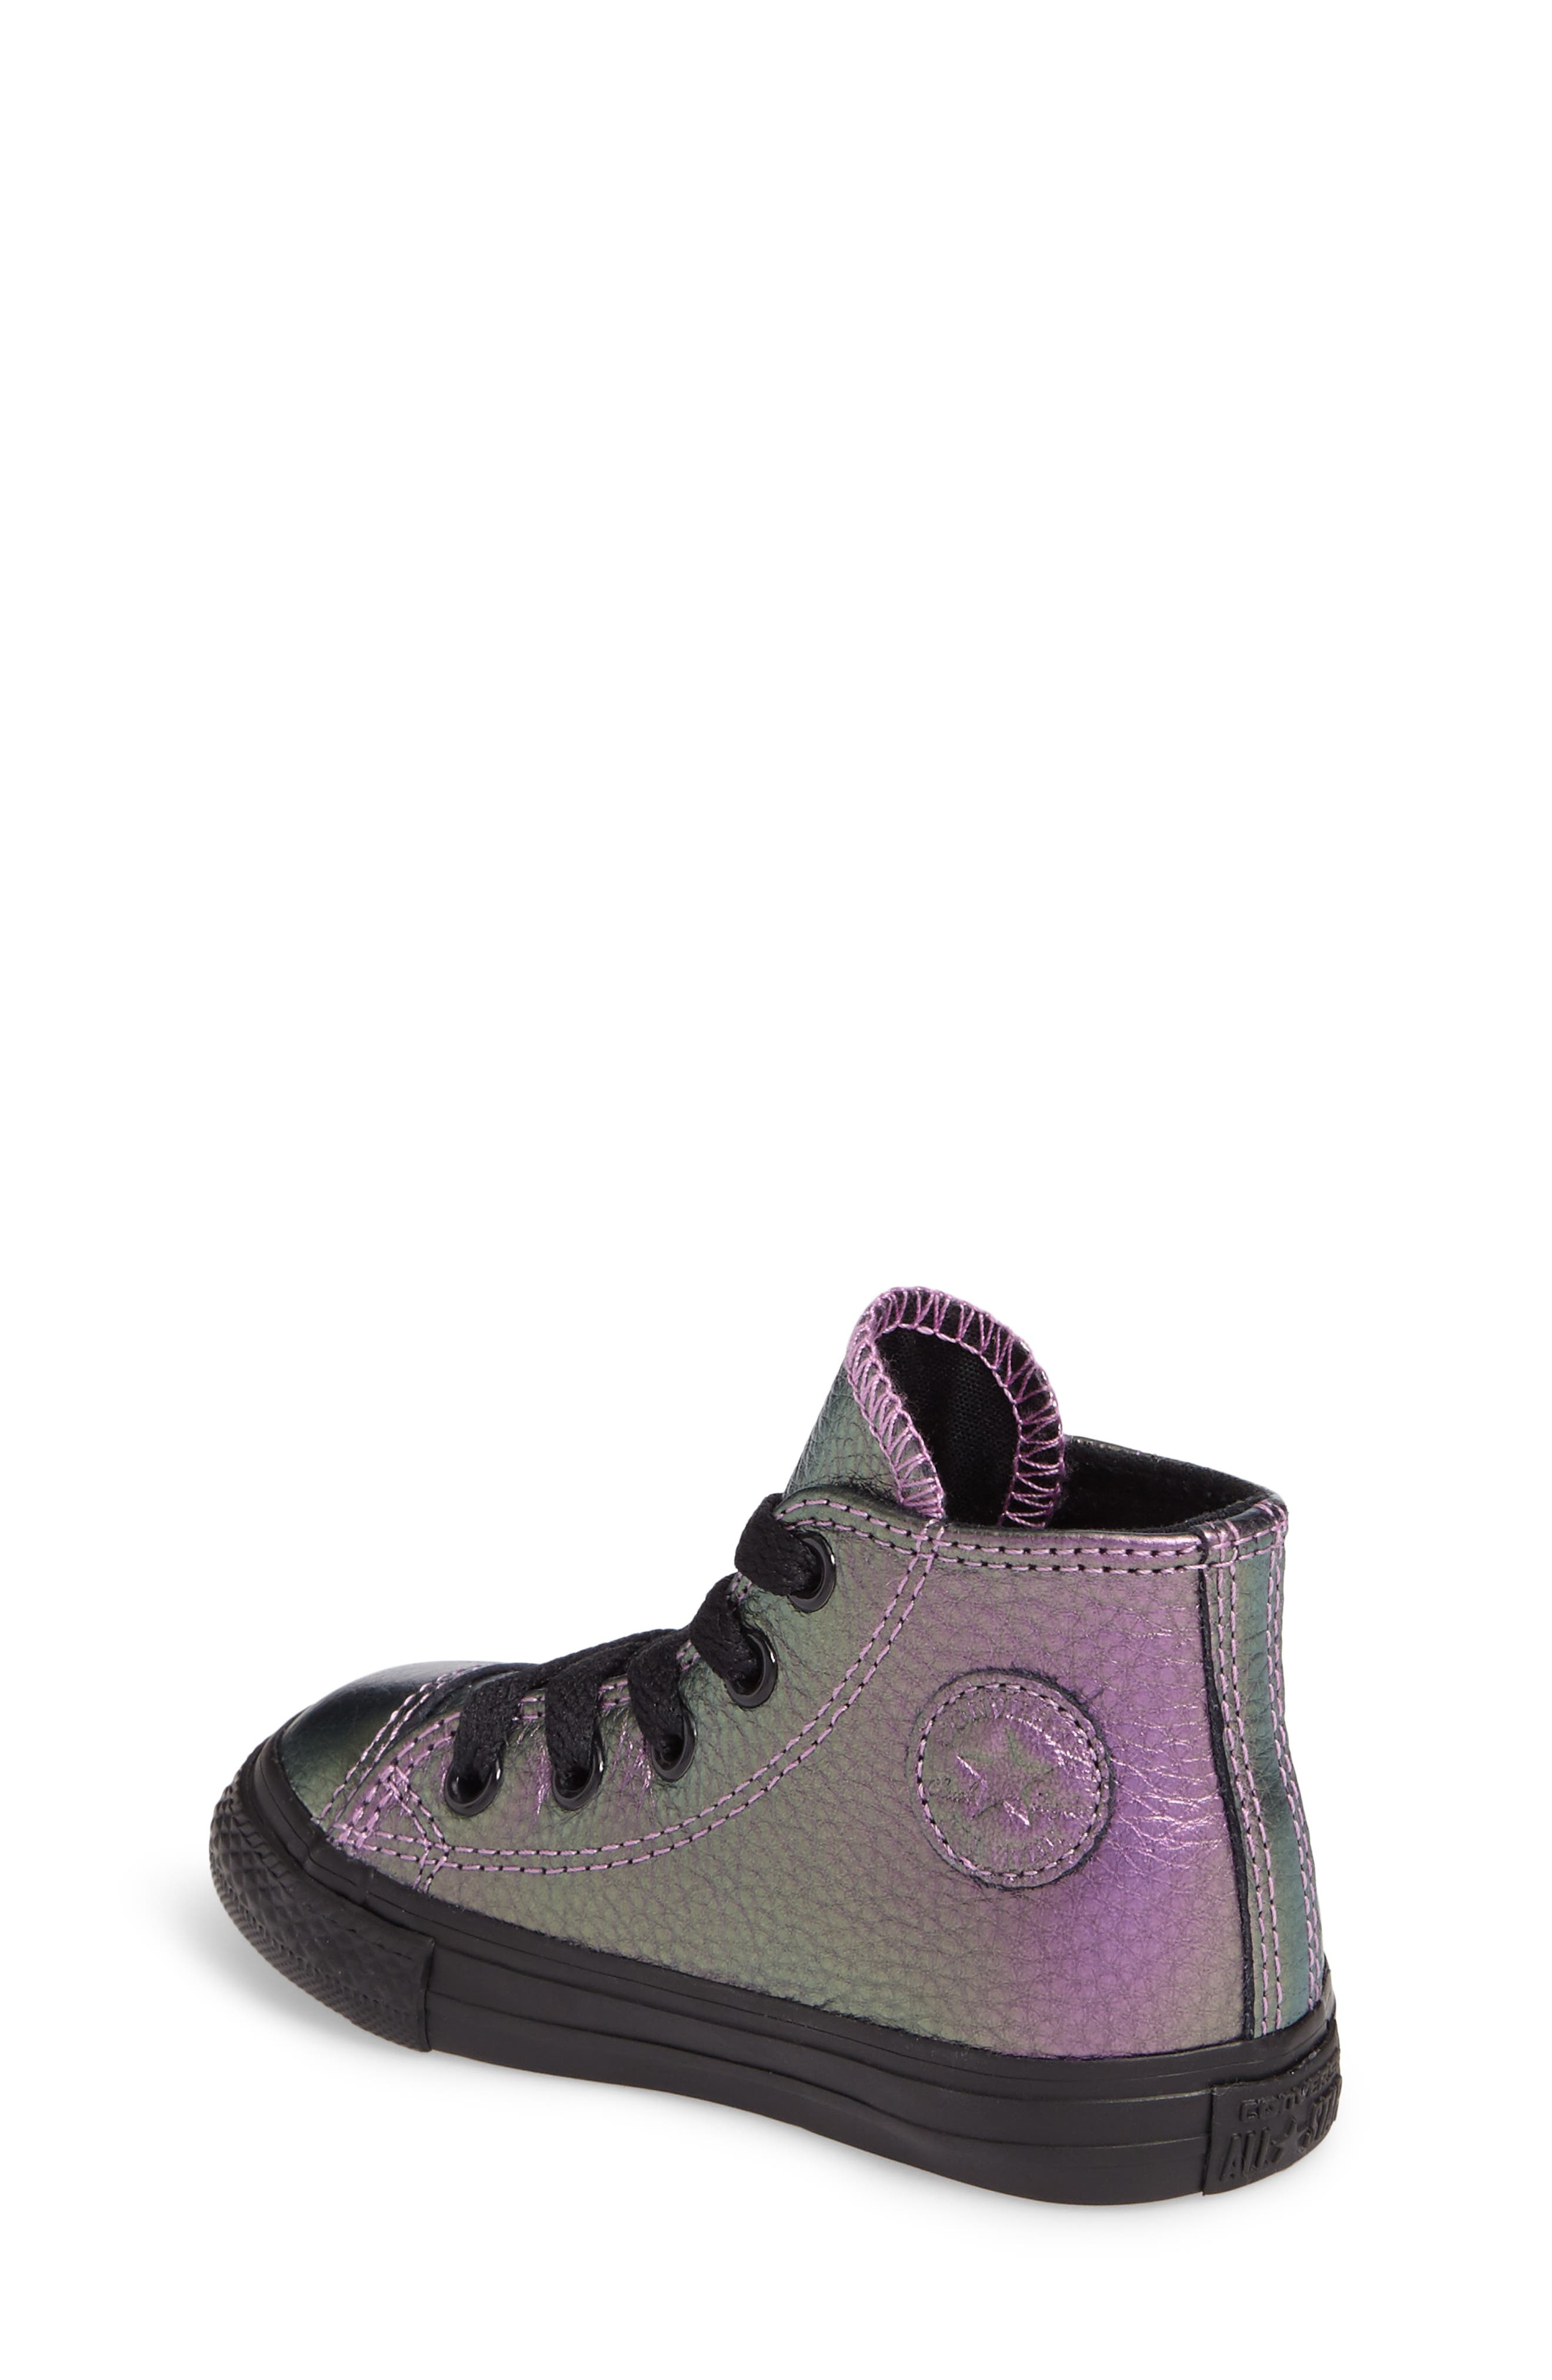 Chuck Taylor<sup>®</sup> All Star<sup>®</sup> Iridescent Leather High Top Sneaker,                             Alternate thumbnail 4, color,